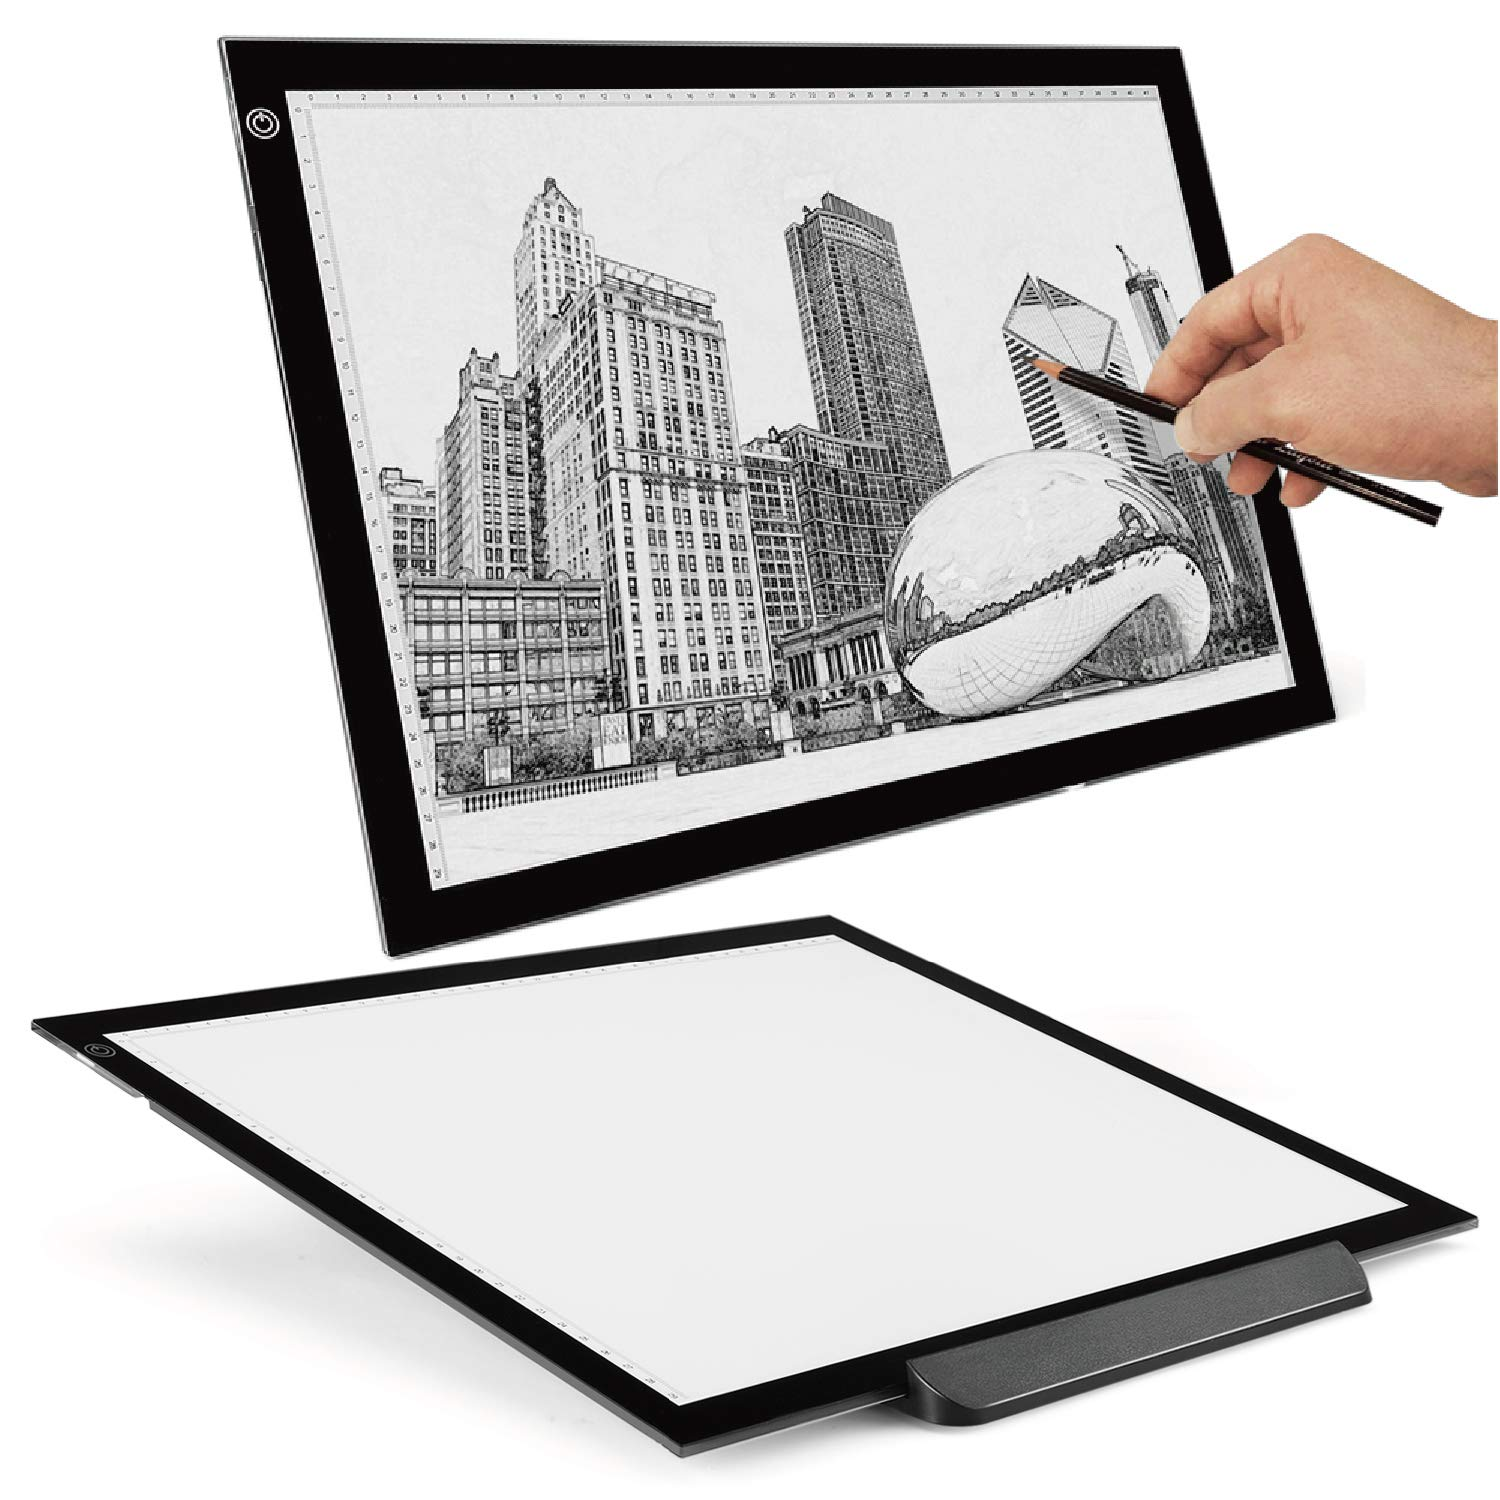 Flexzion A3 Artist Light Box Tracing Table Pad Drawing Board Tablet - Portable Ultra-Thin LED Illumination w/ Multi-Level Dimmable Brightness for Stencil Tattoo Drawing Design Sketching Animation by Flexzion